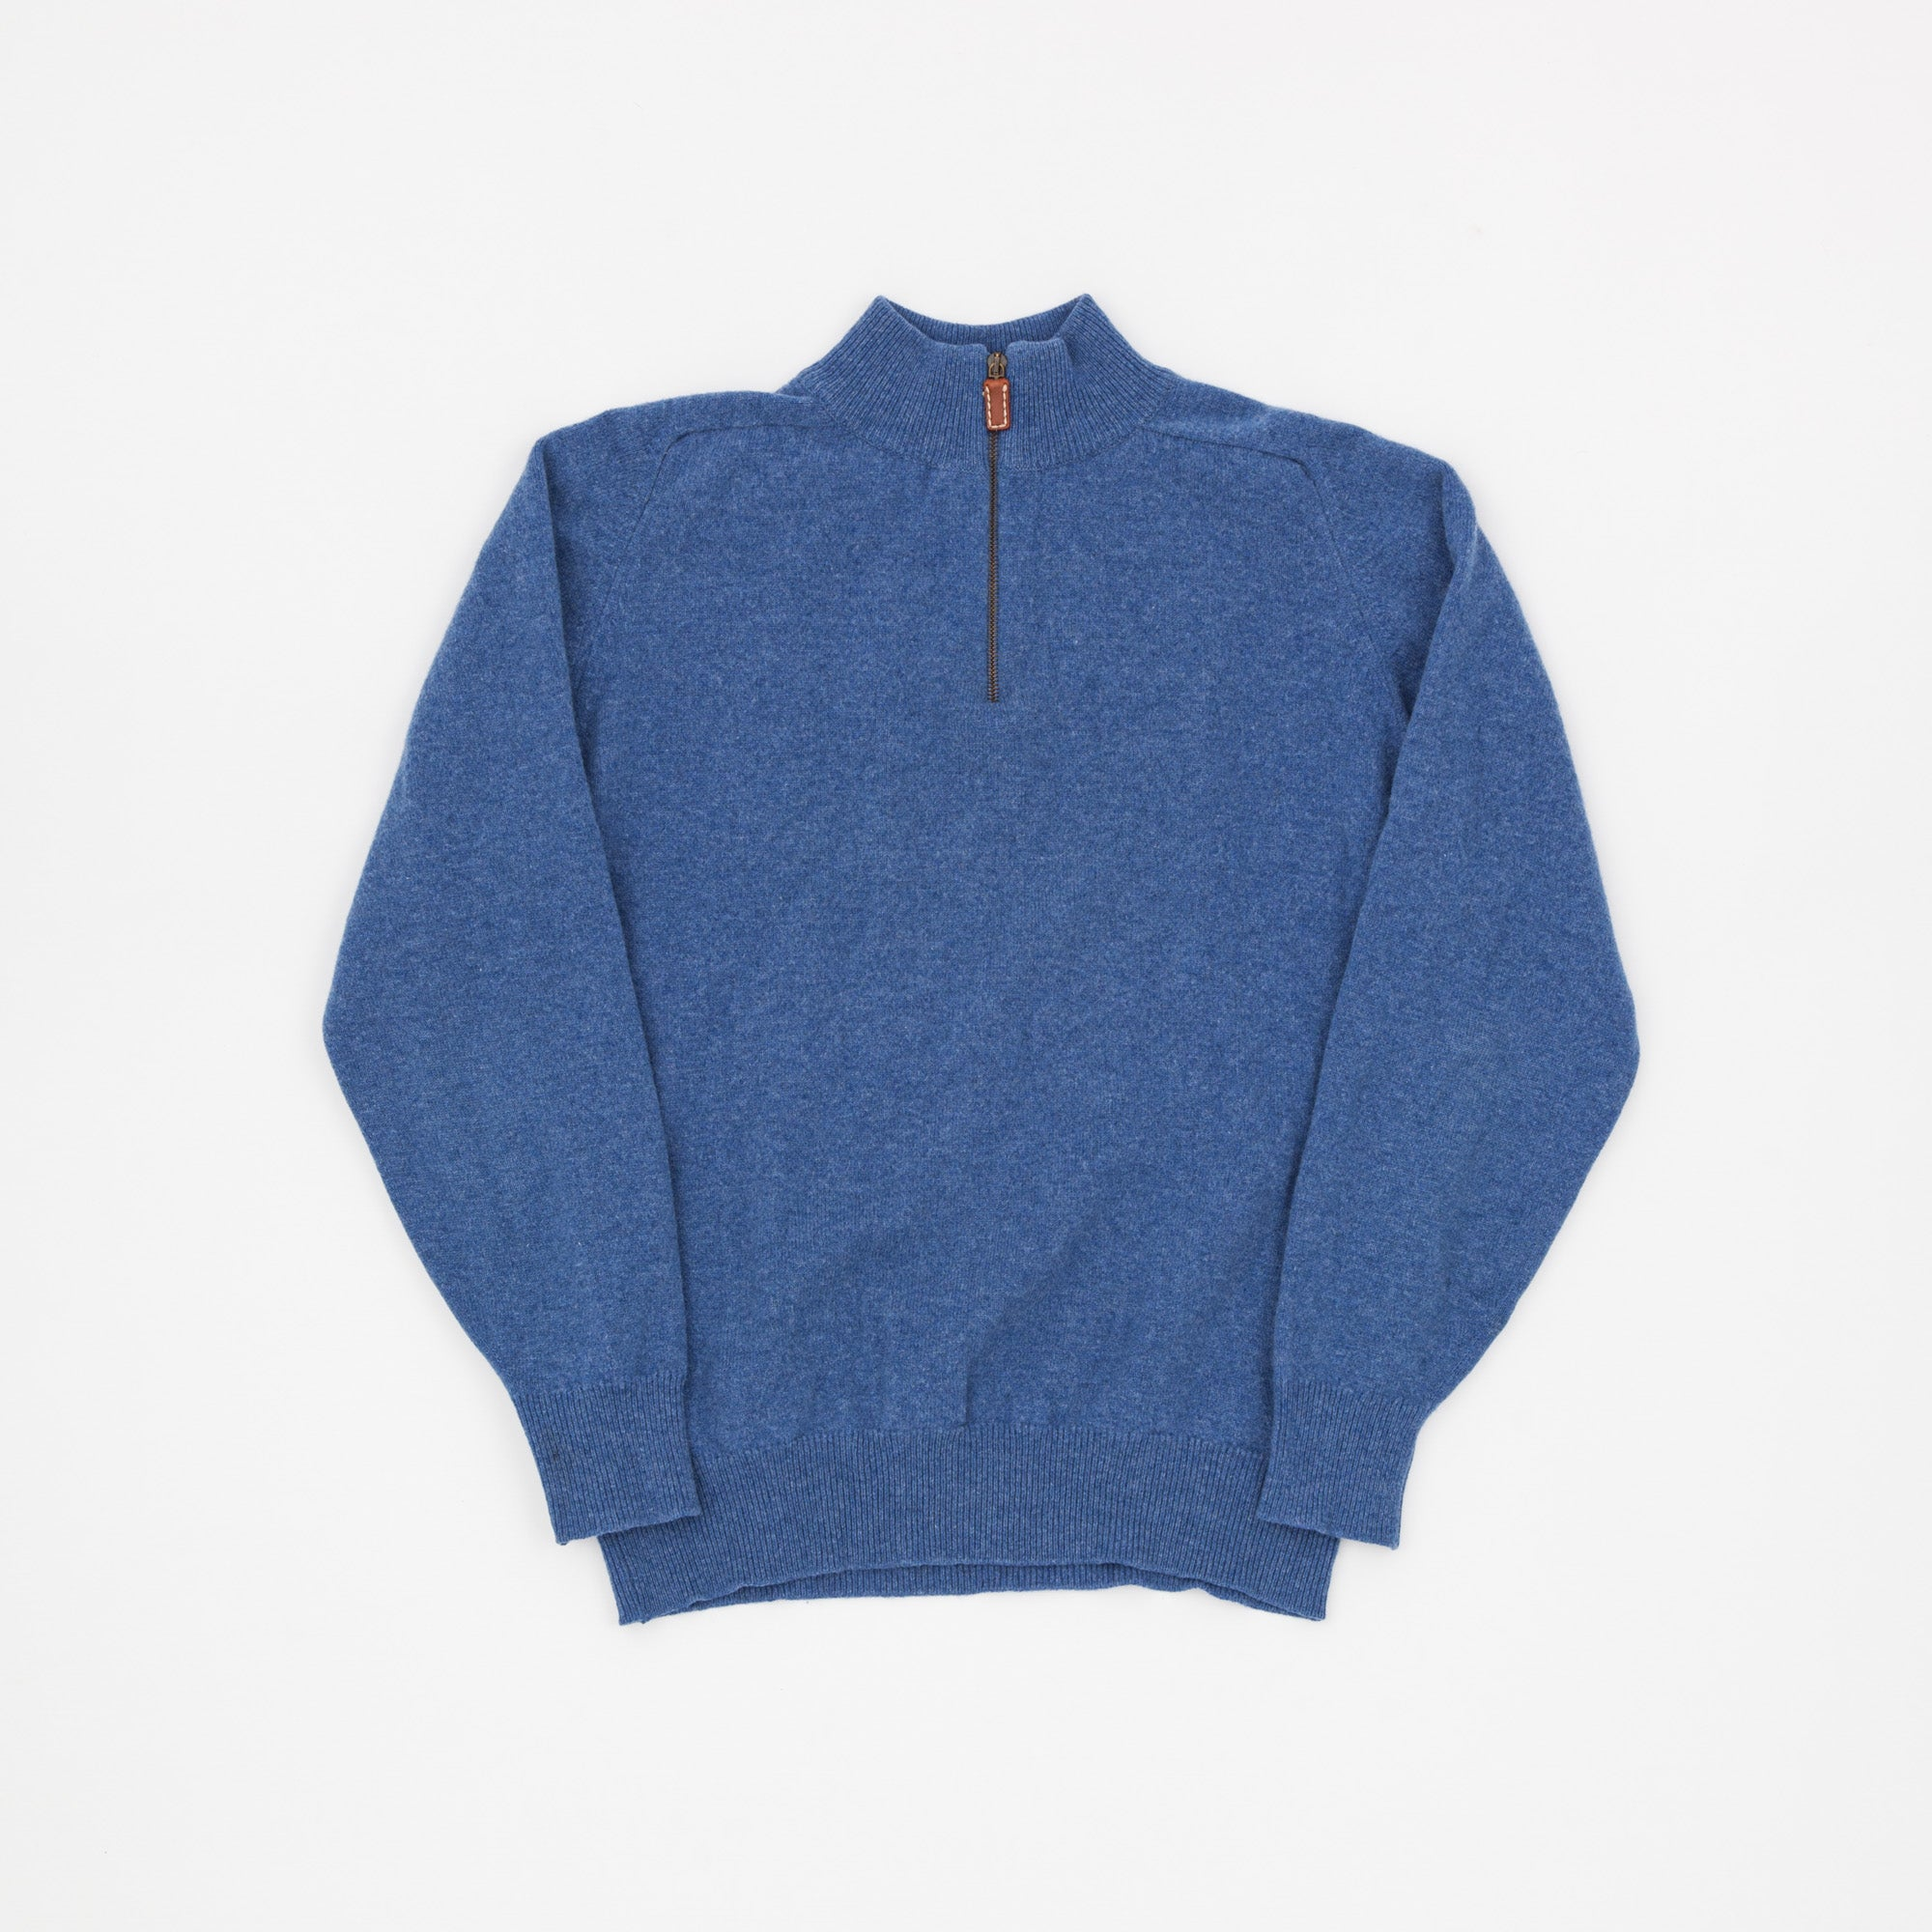 William Lockie 1/4 Zip Sweater